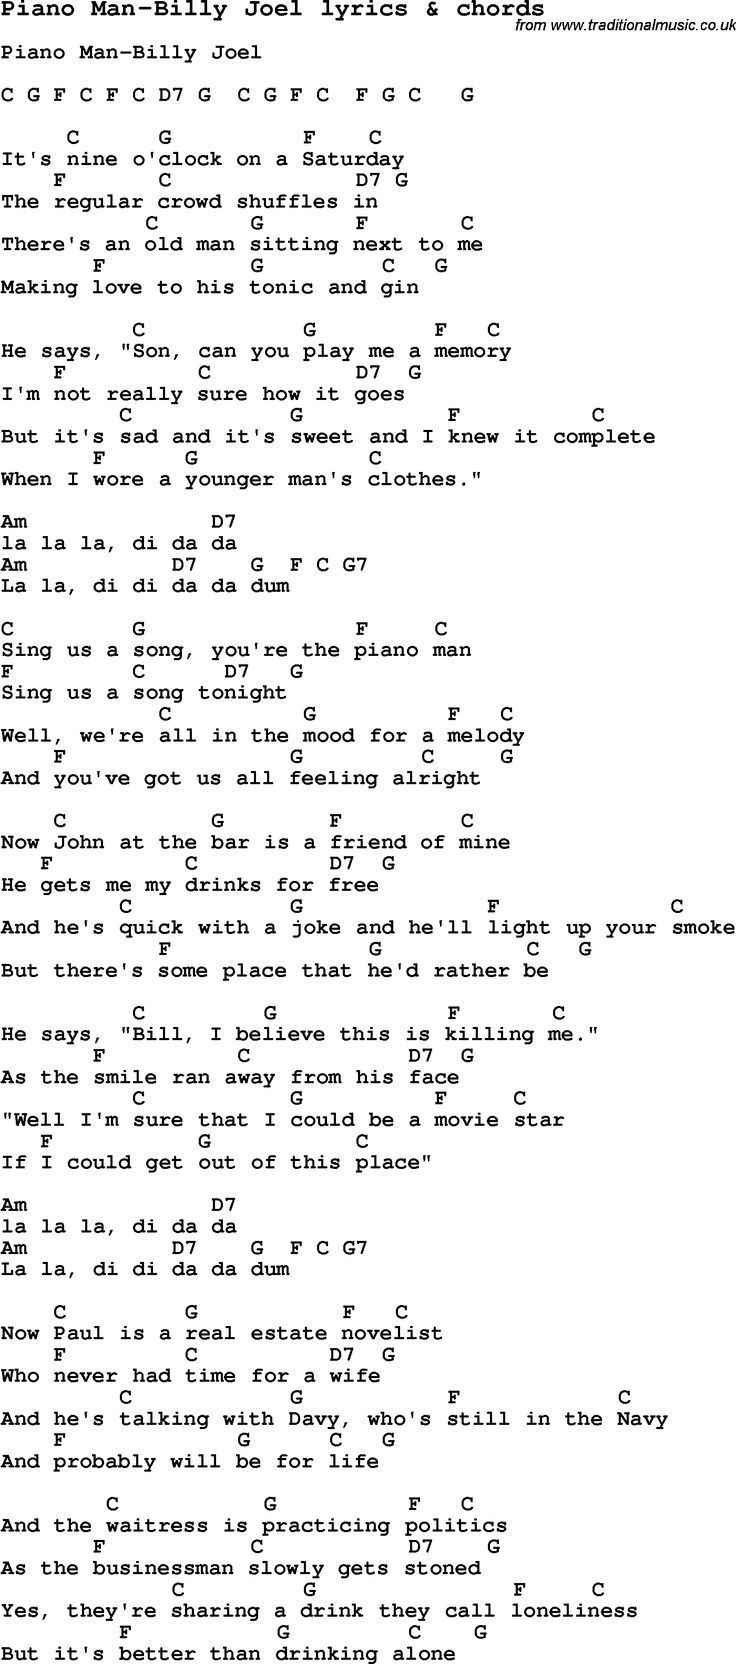 Love Song Lyrics For Piano ManBilly Joel With Chords For Ukulele